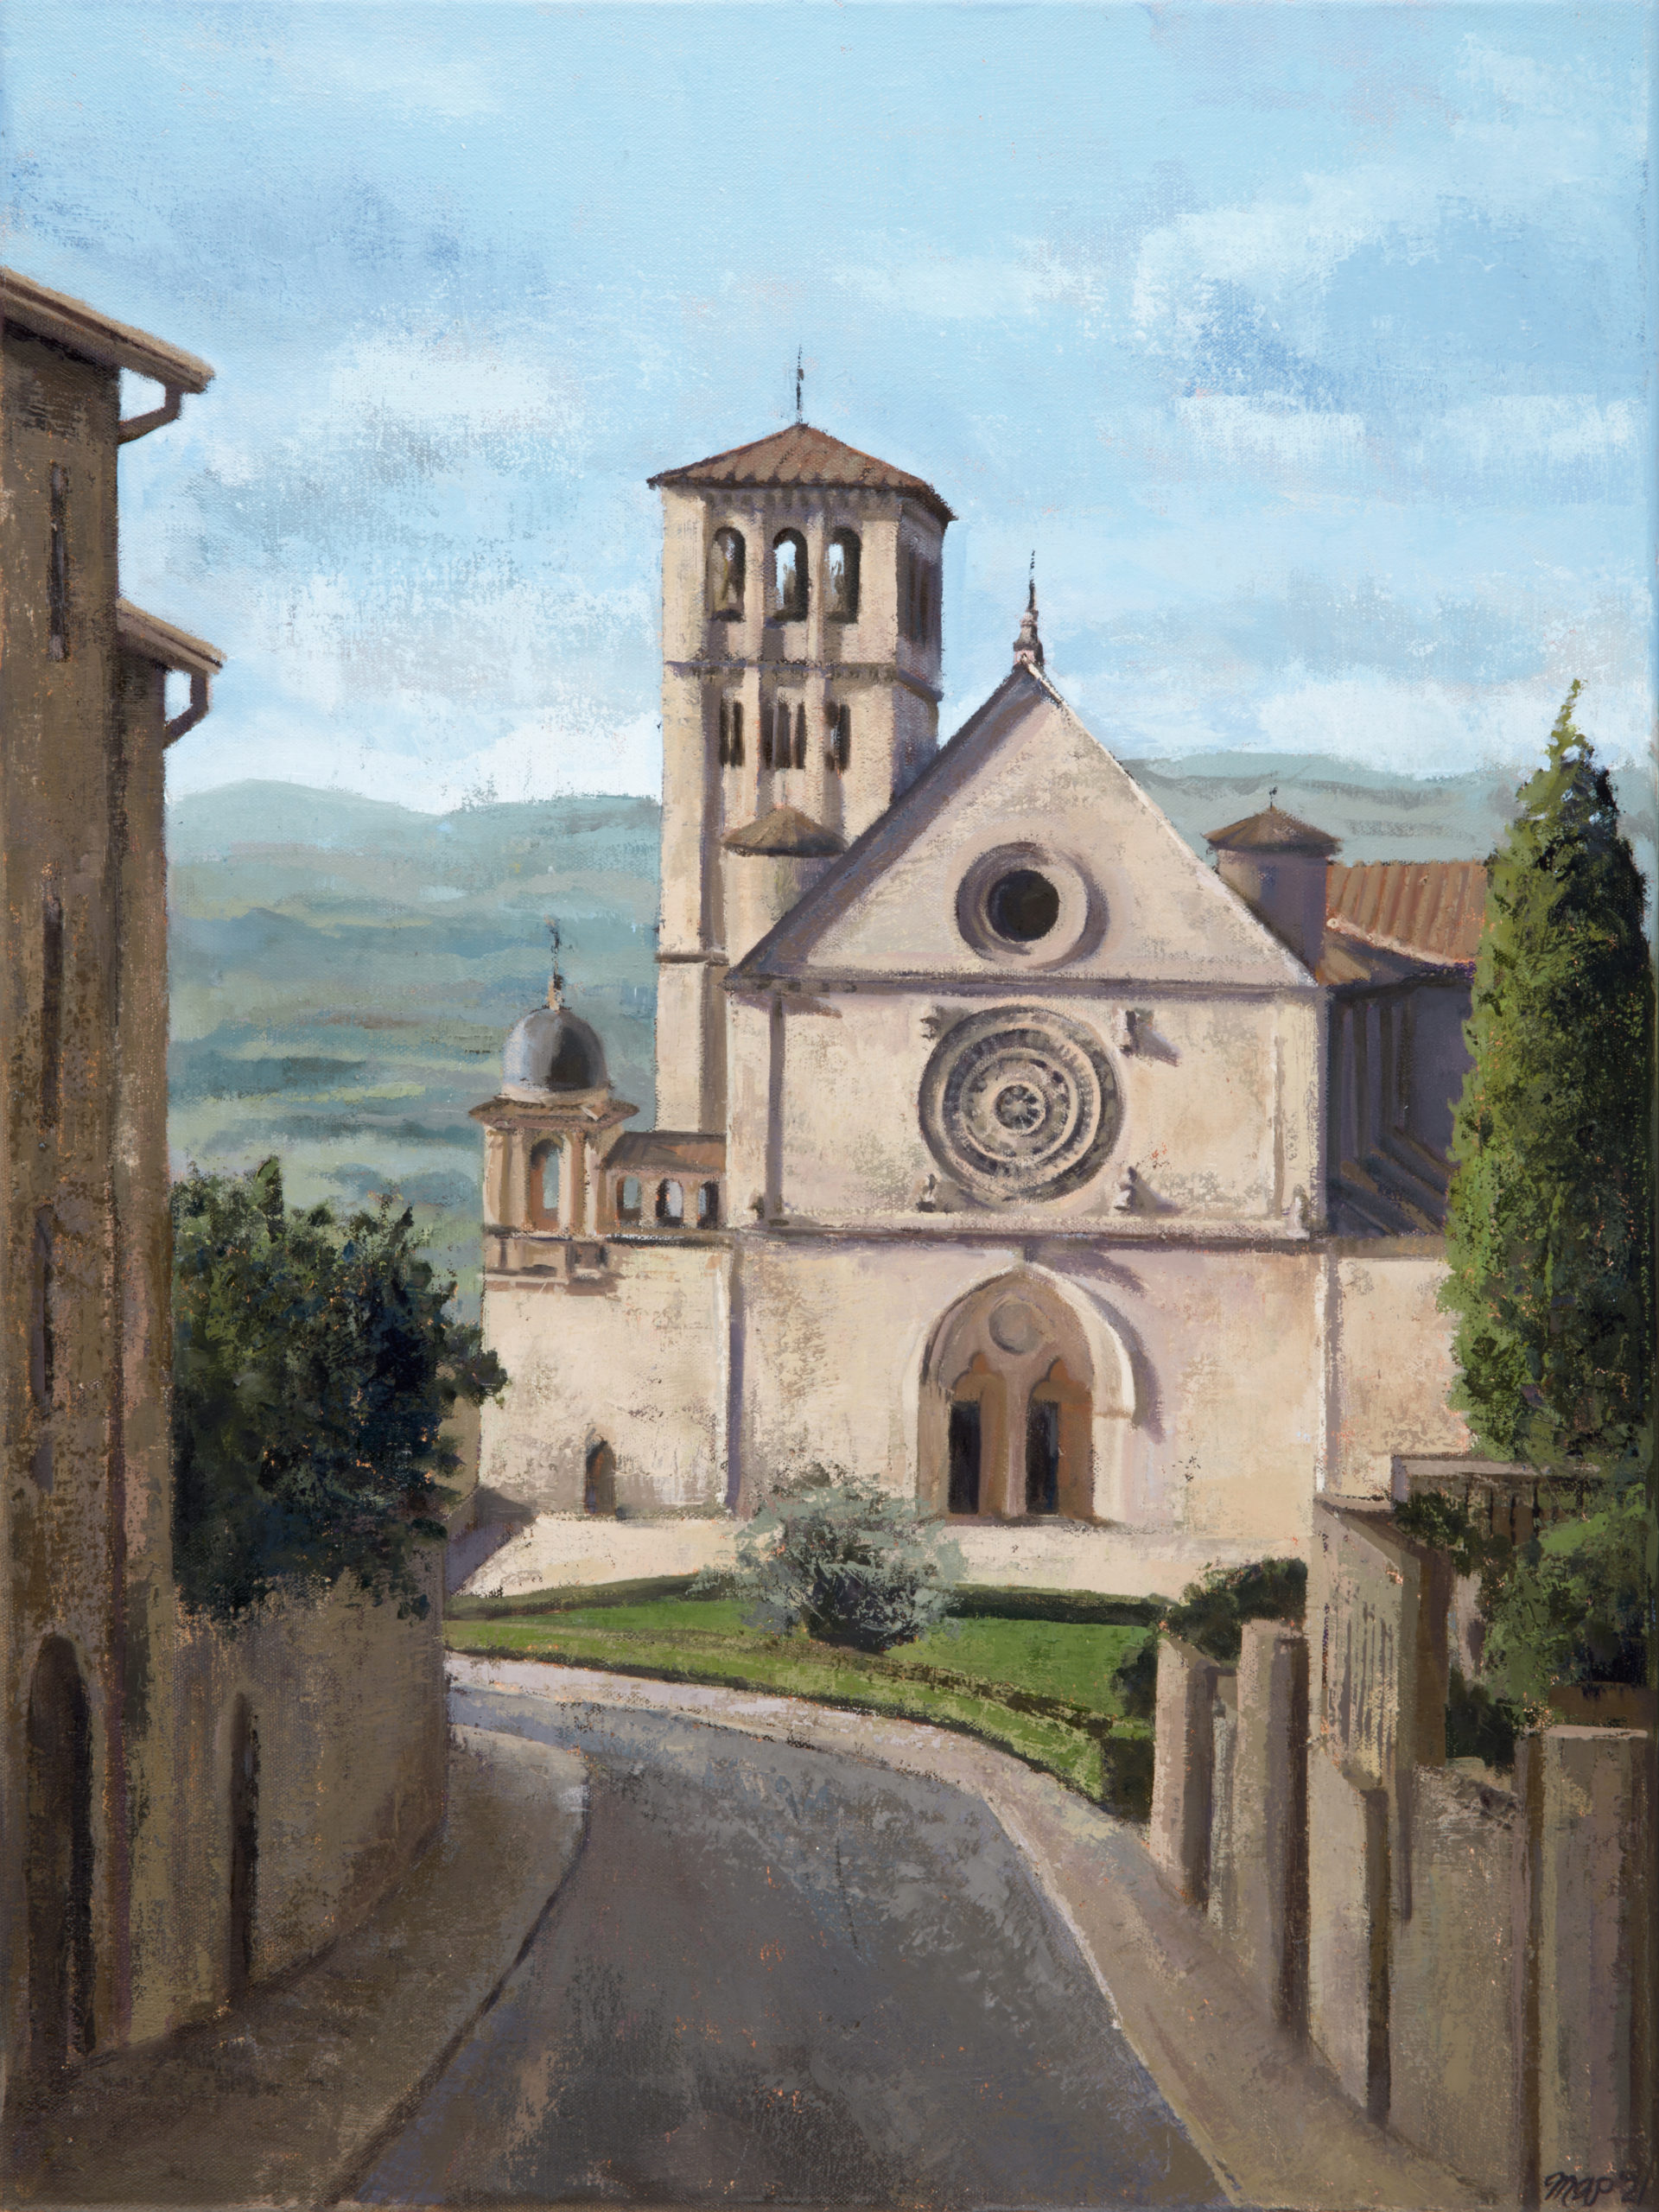 oil painting of basilica of saint francis of assisi from uphill